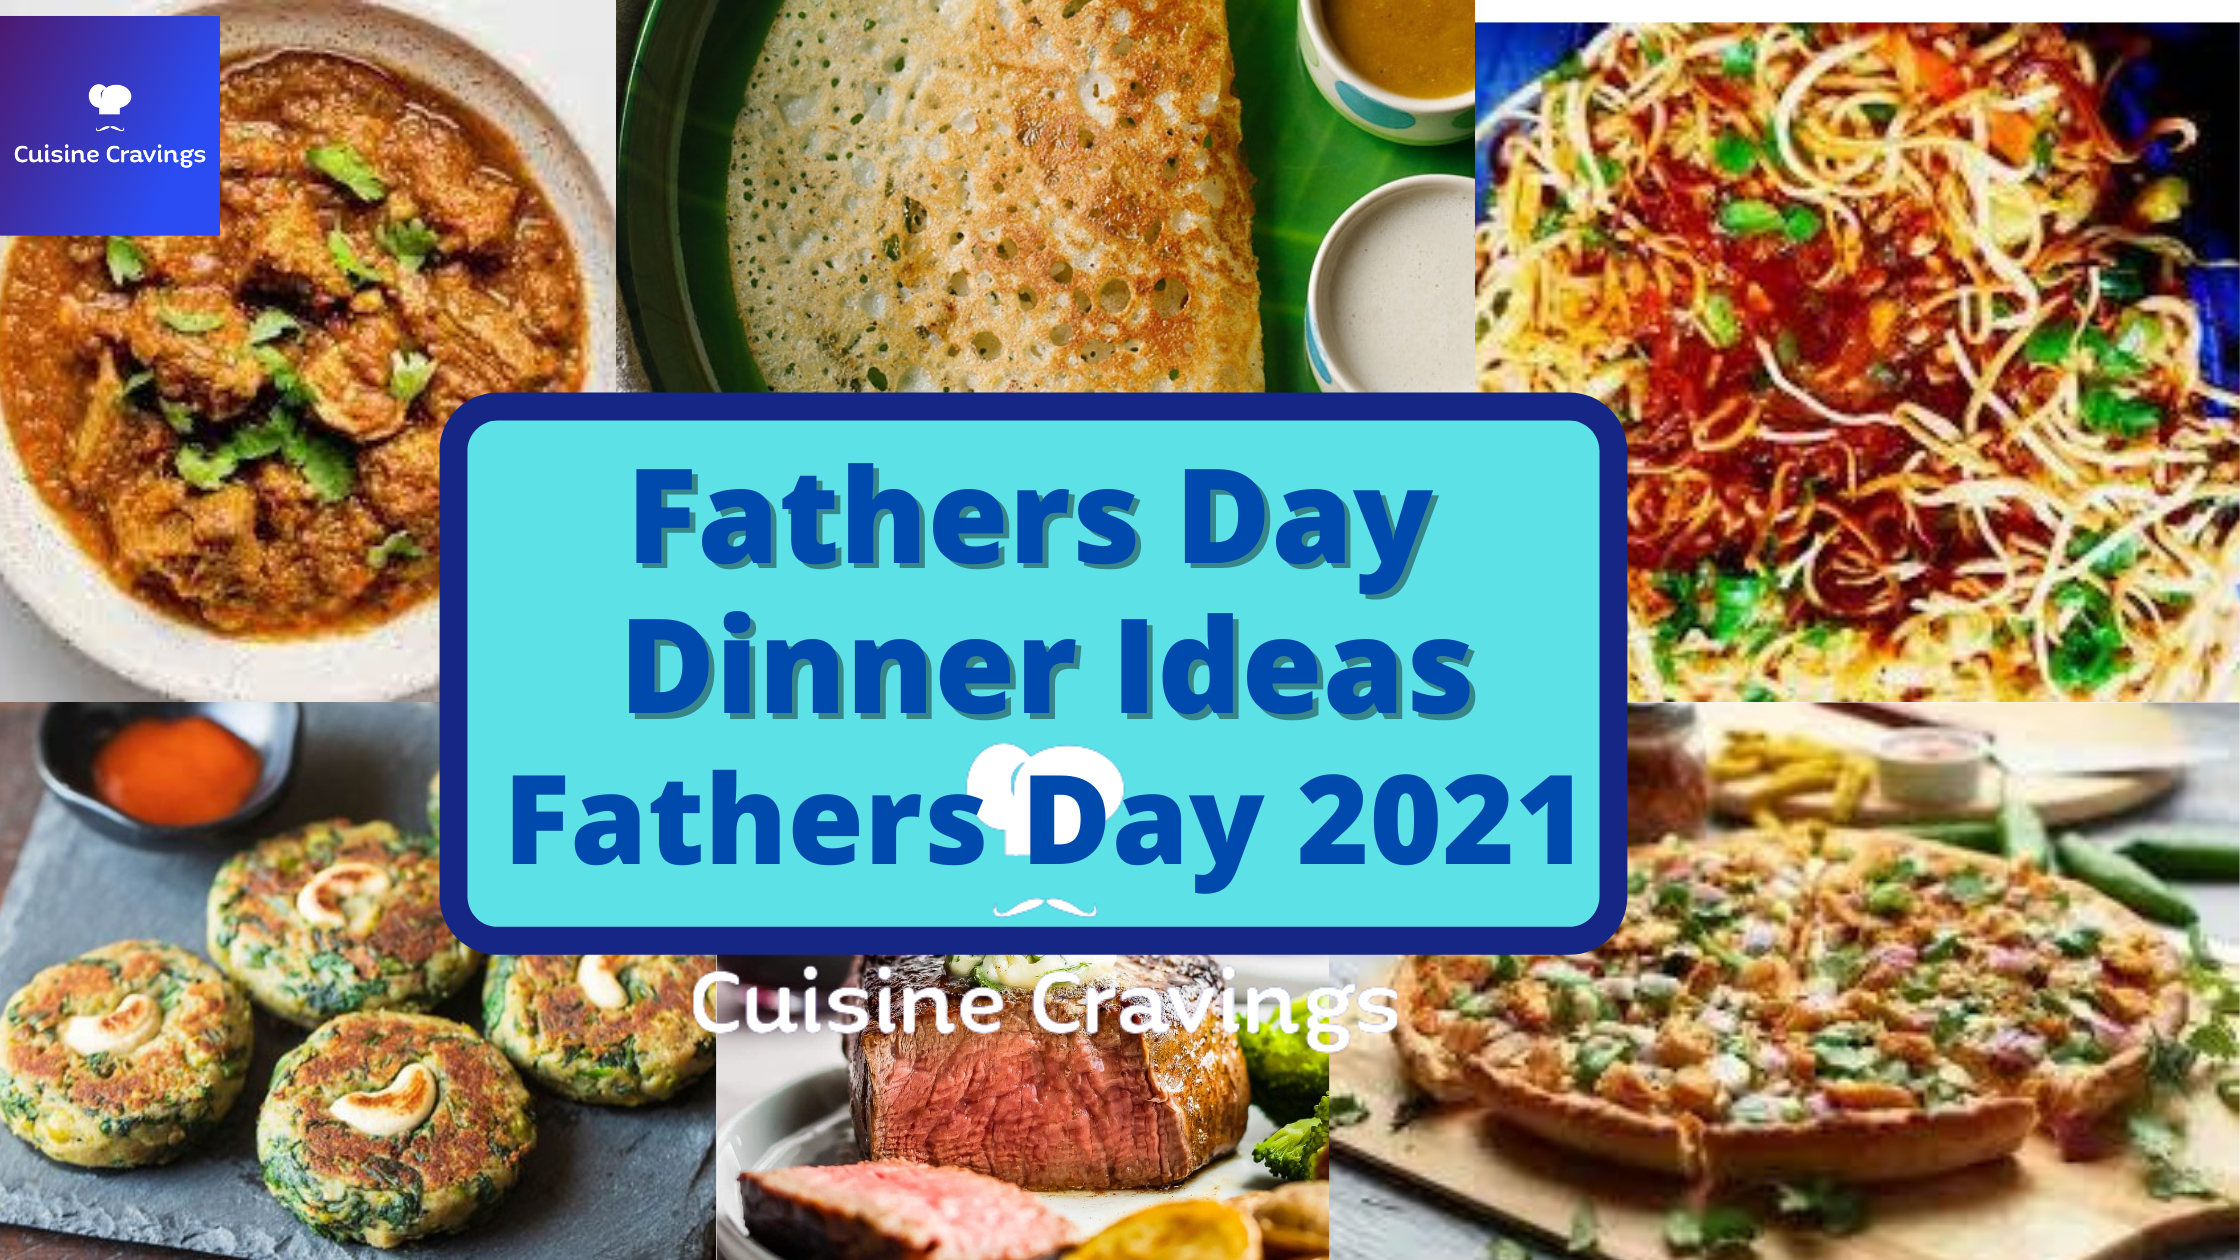 Happy Fathers Day 2021 Dinner Ideas